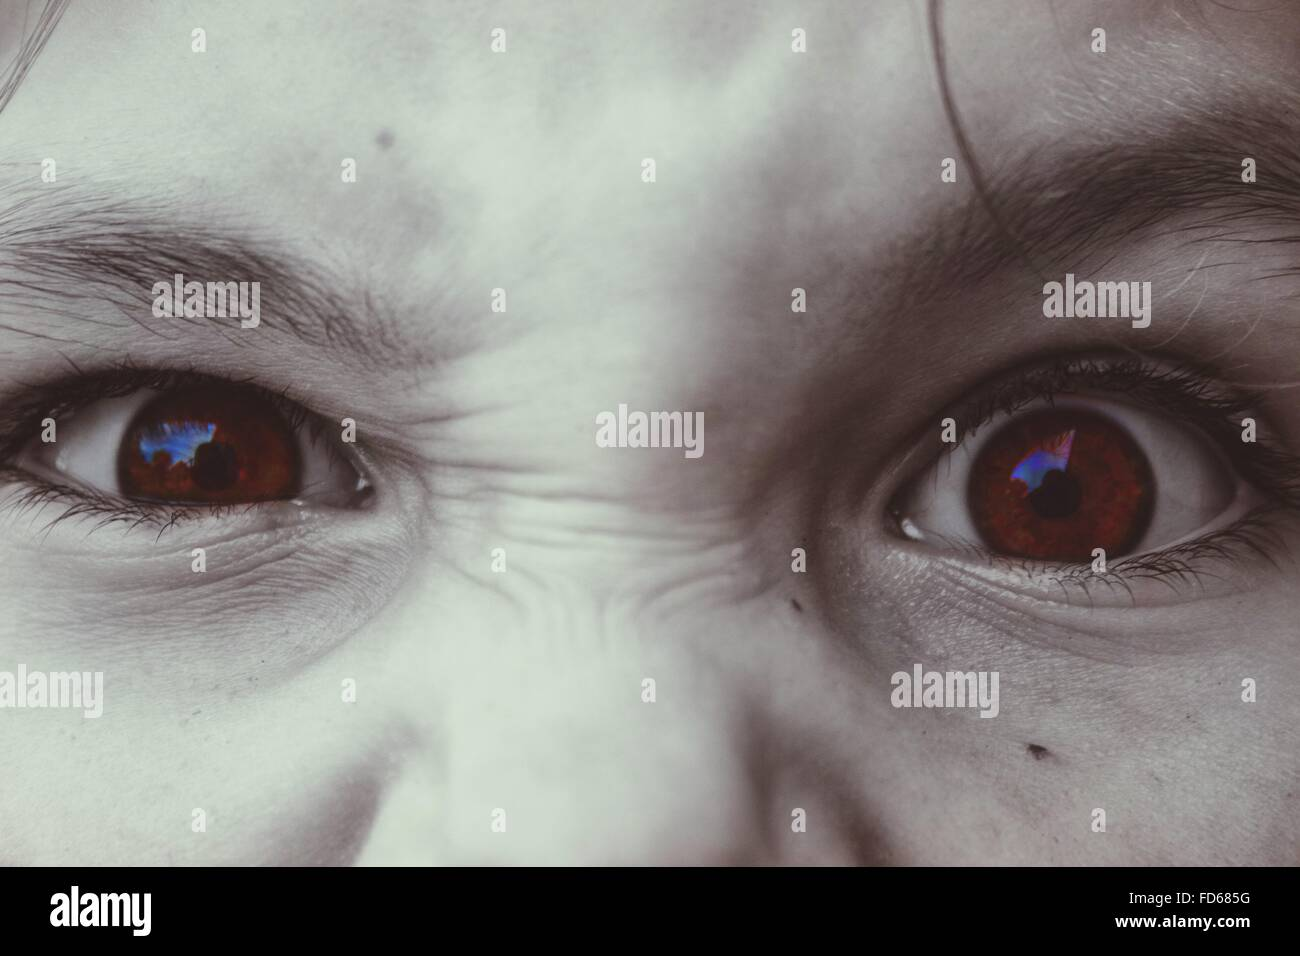 Close-Up Of A Child Eyes - Stock Image